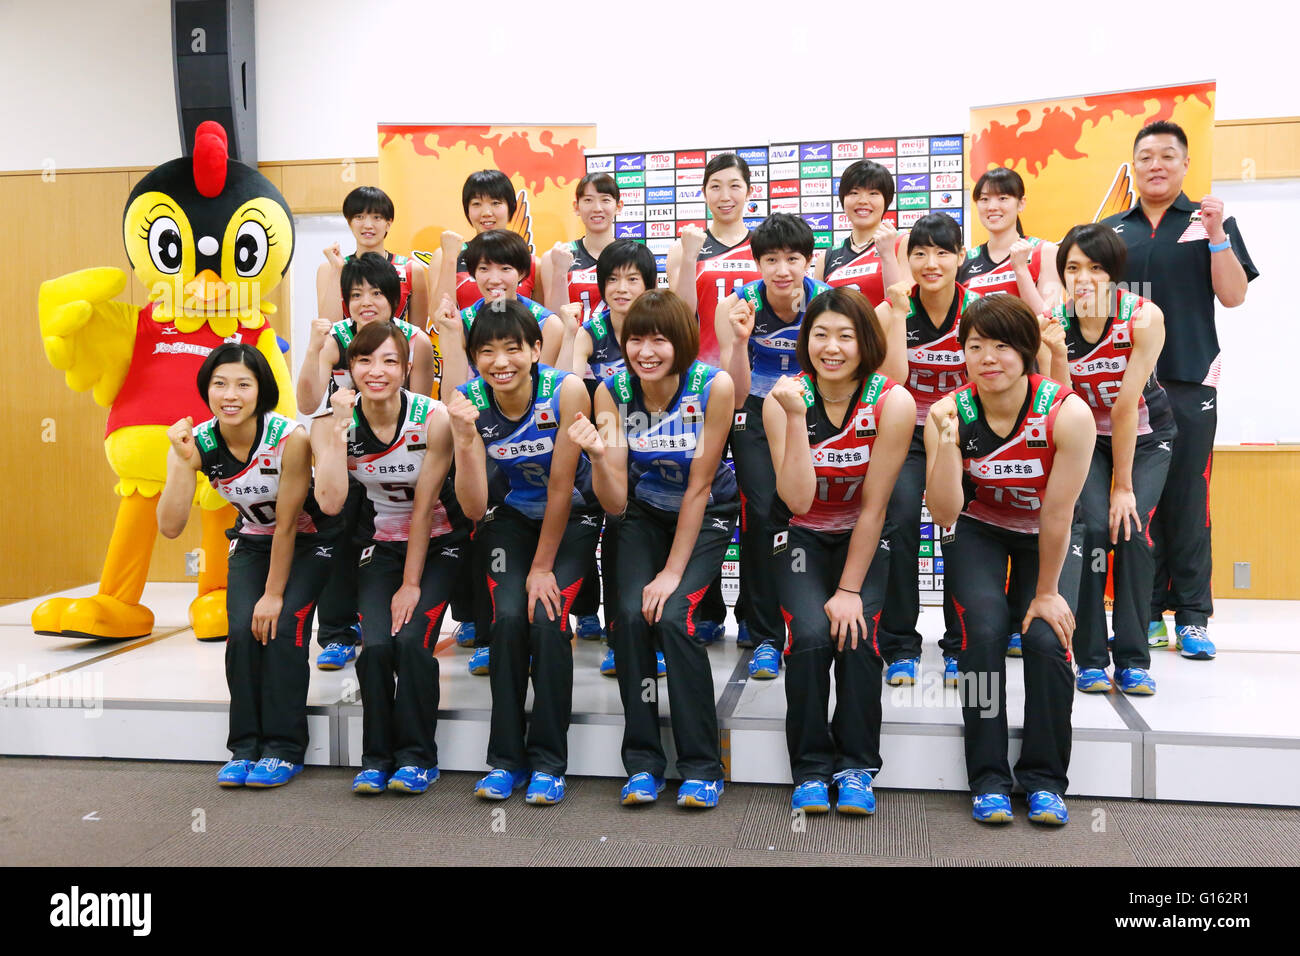 Page 3 Japan Volleyball Team Group Jpn High Resolution Stock Photography And Images Alamy